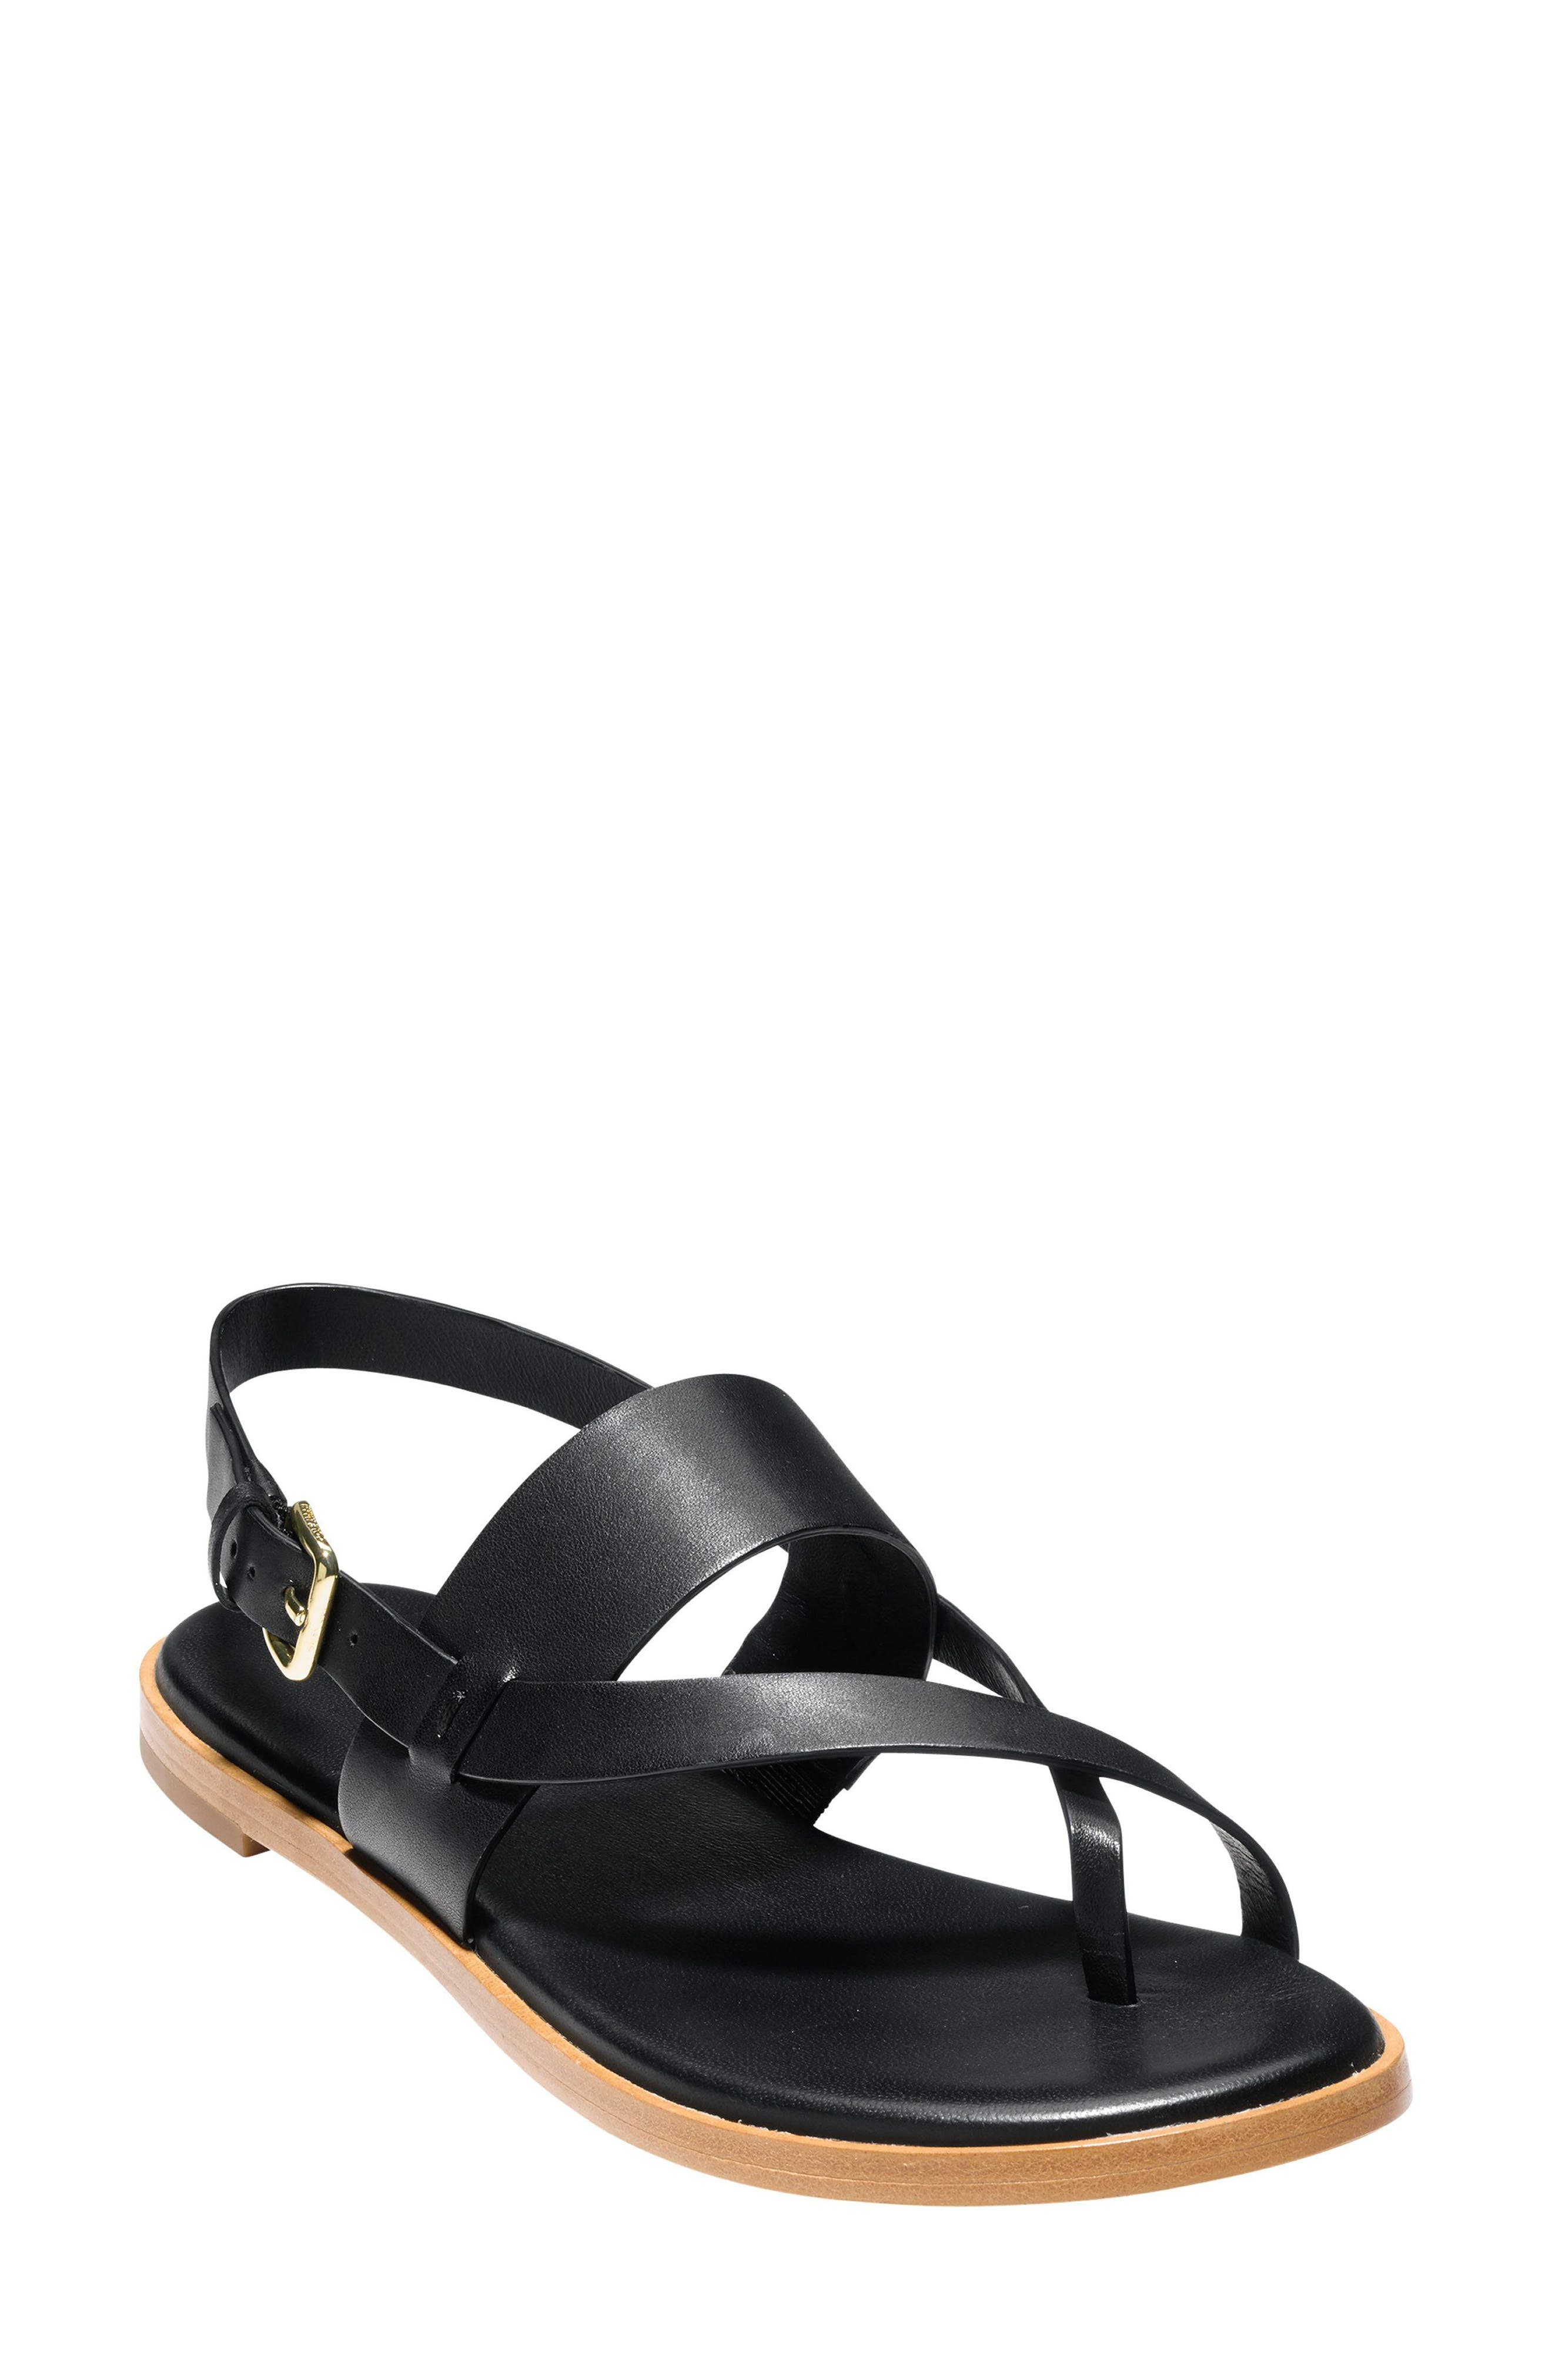 fbc7f0d8a07 Cole Haan Women S Anica Leather Thong Sandals In Black Leather ...